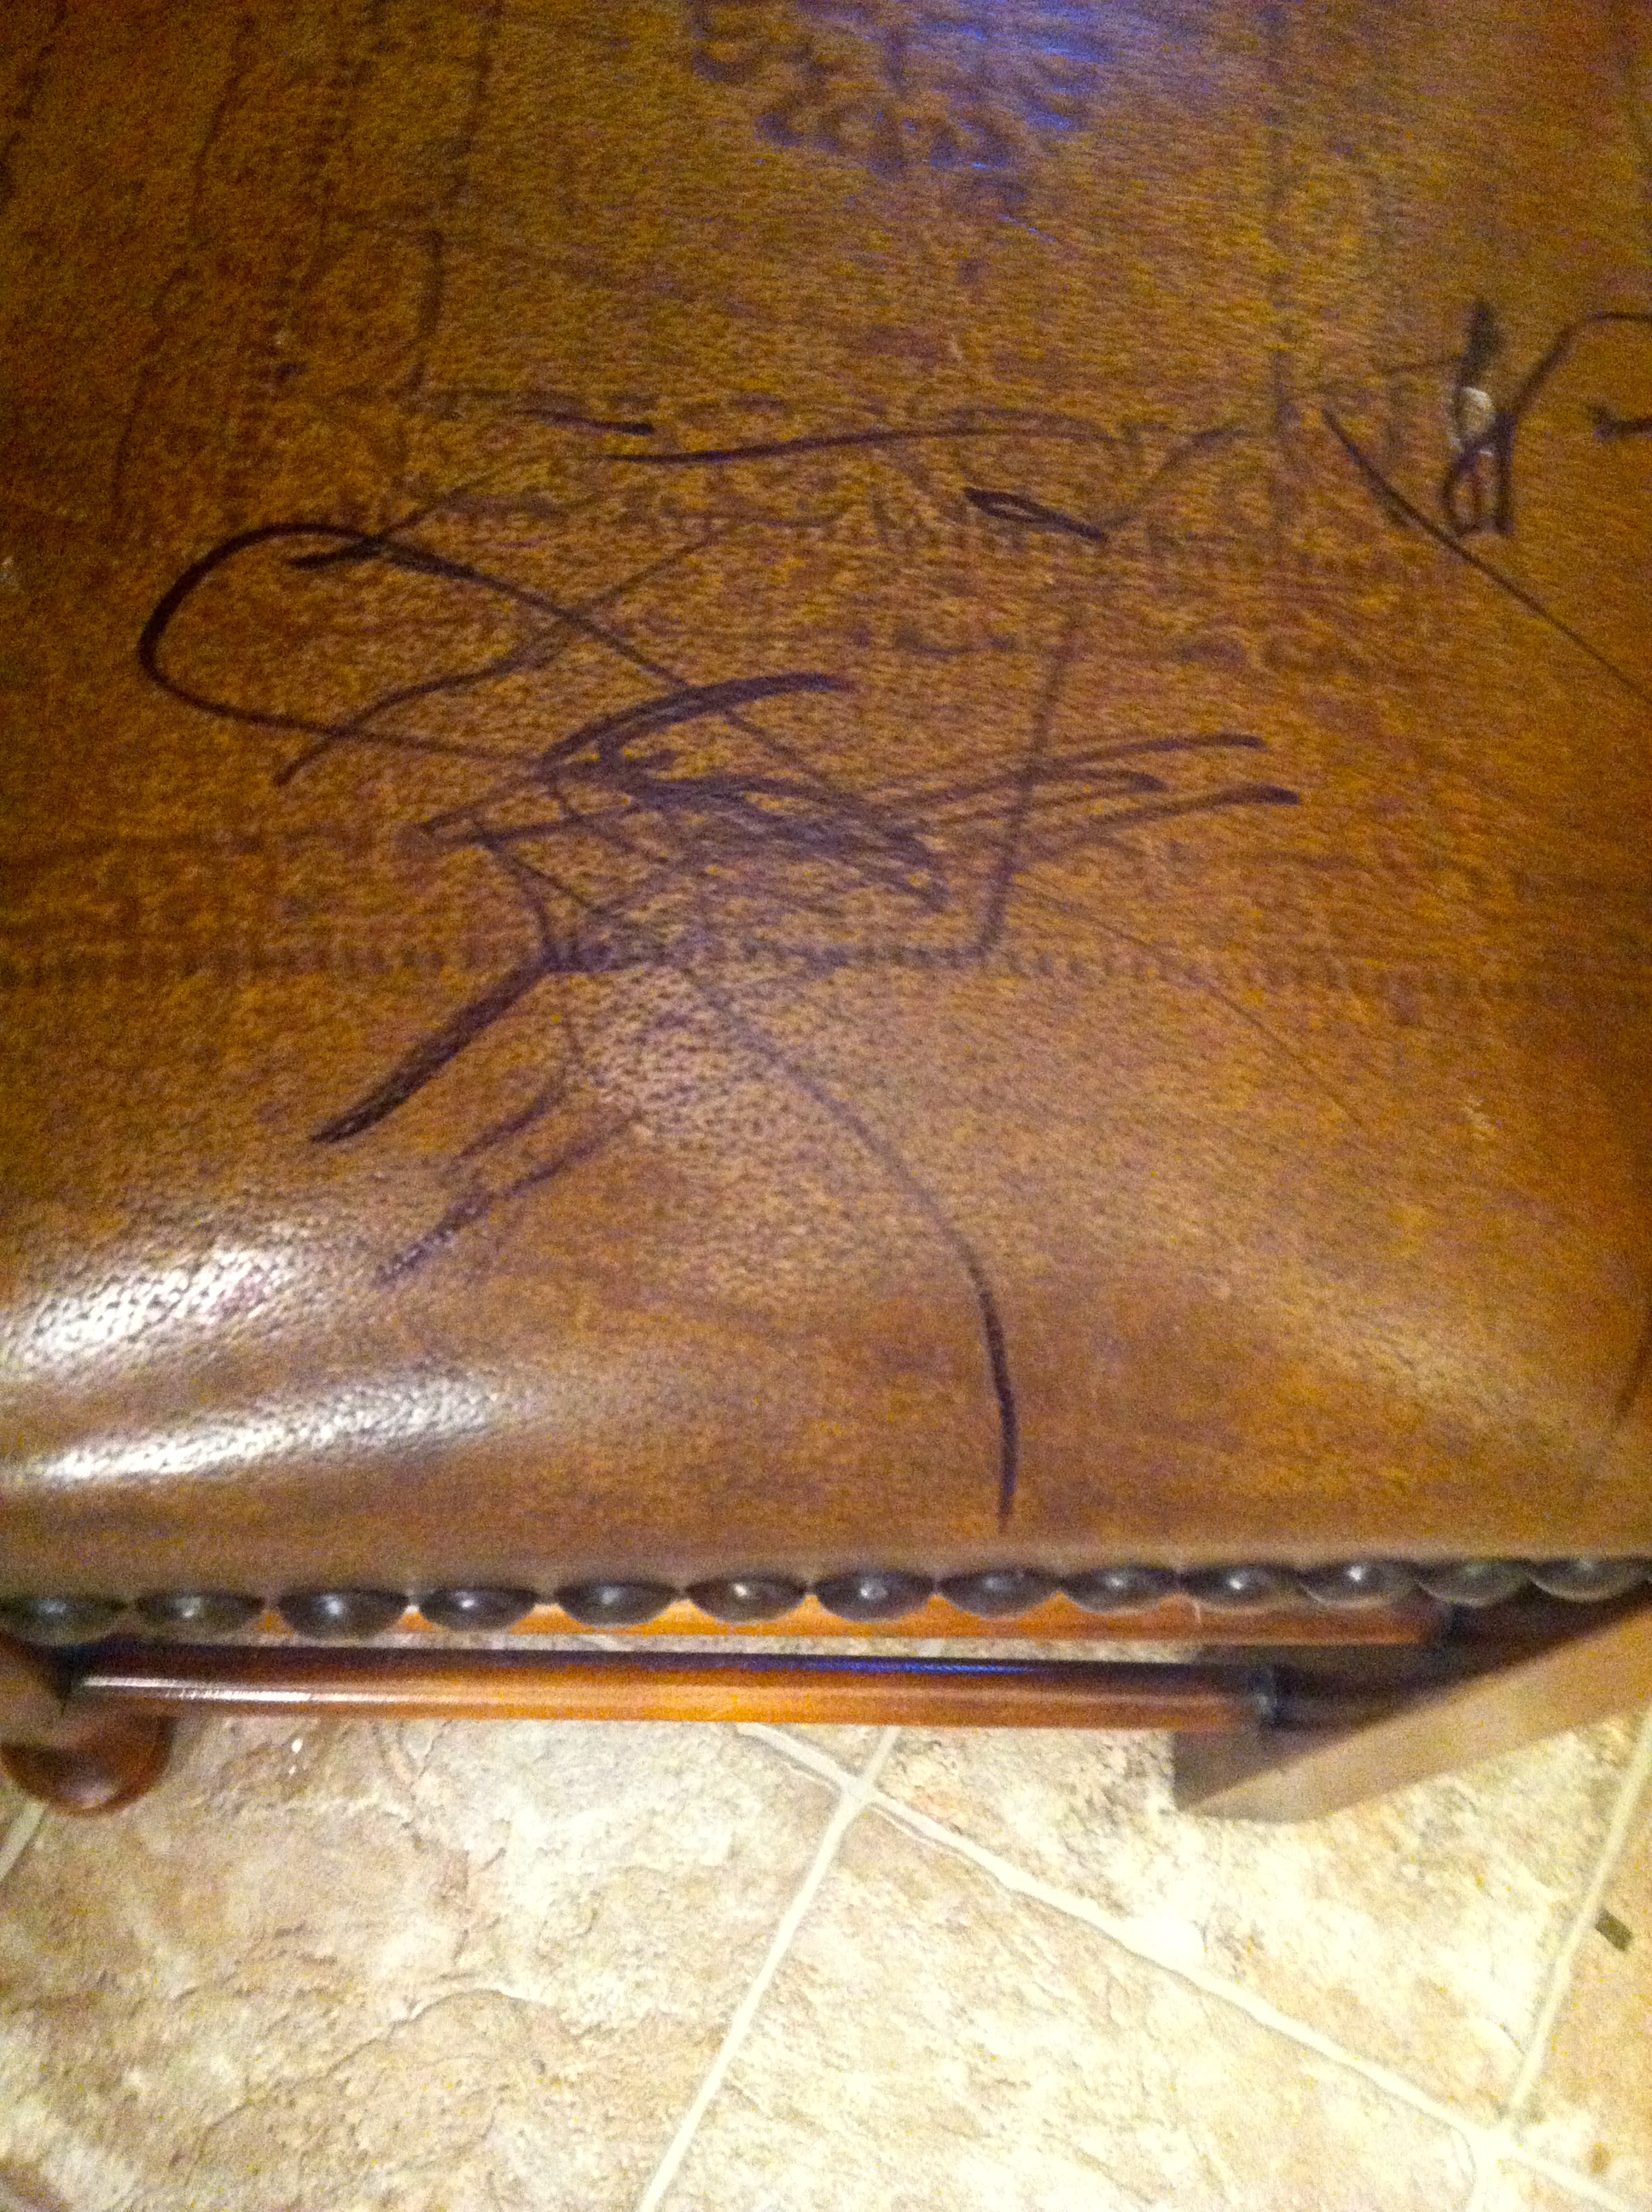 how to erase pen ink from leather sofa with down cushions remove permanent marker furniture